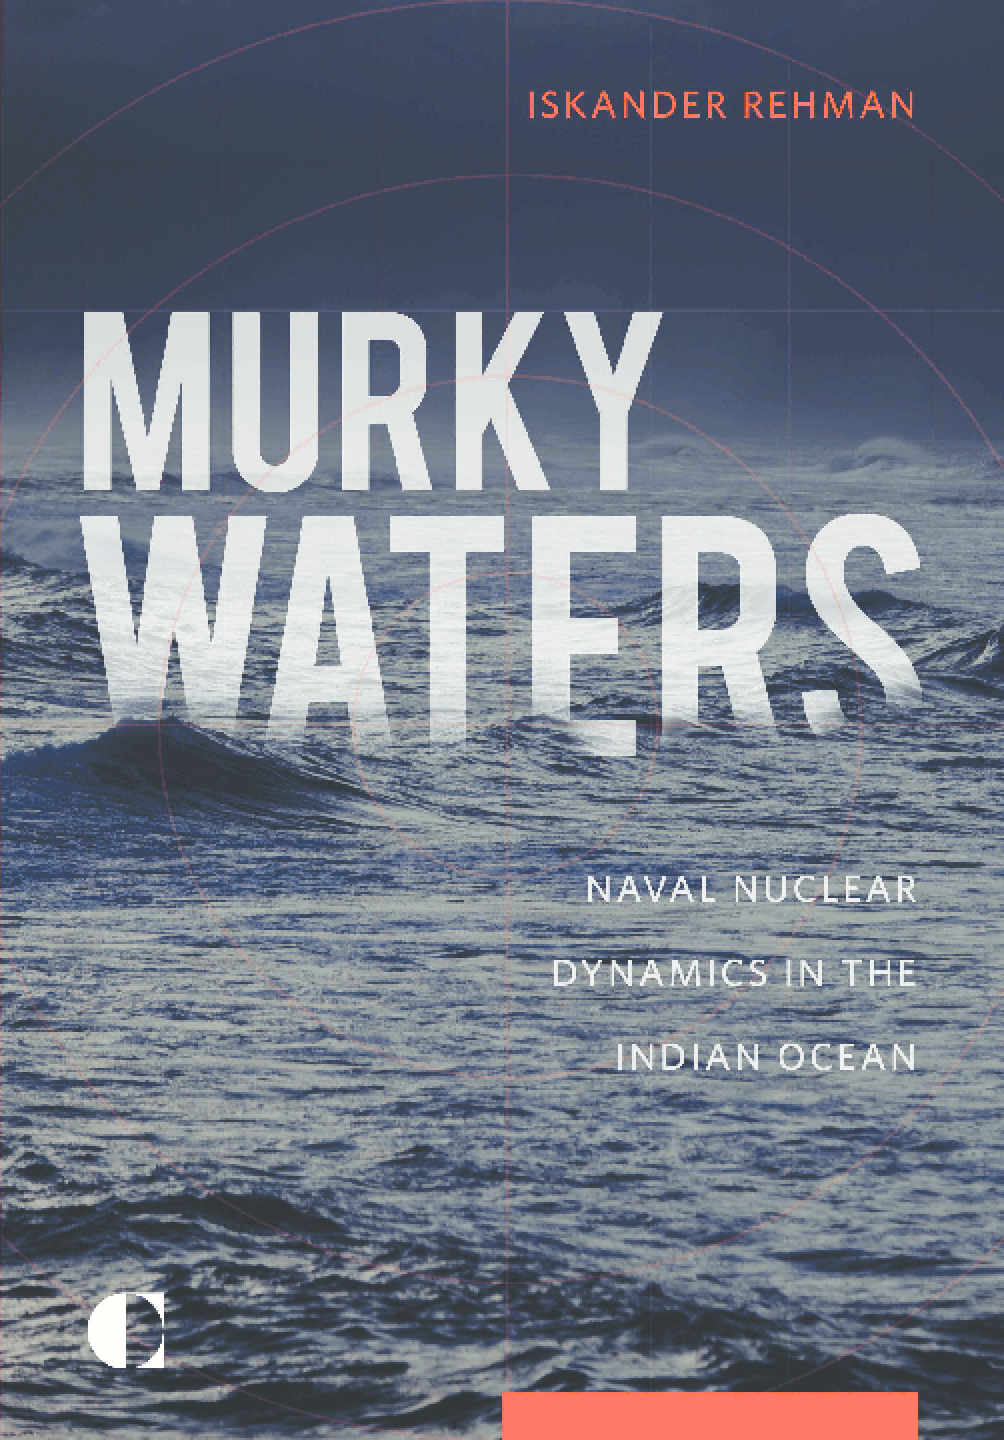 Murky Waters: Naval Nuclear Dynamics in the Indian Ocean